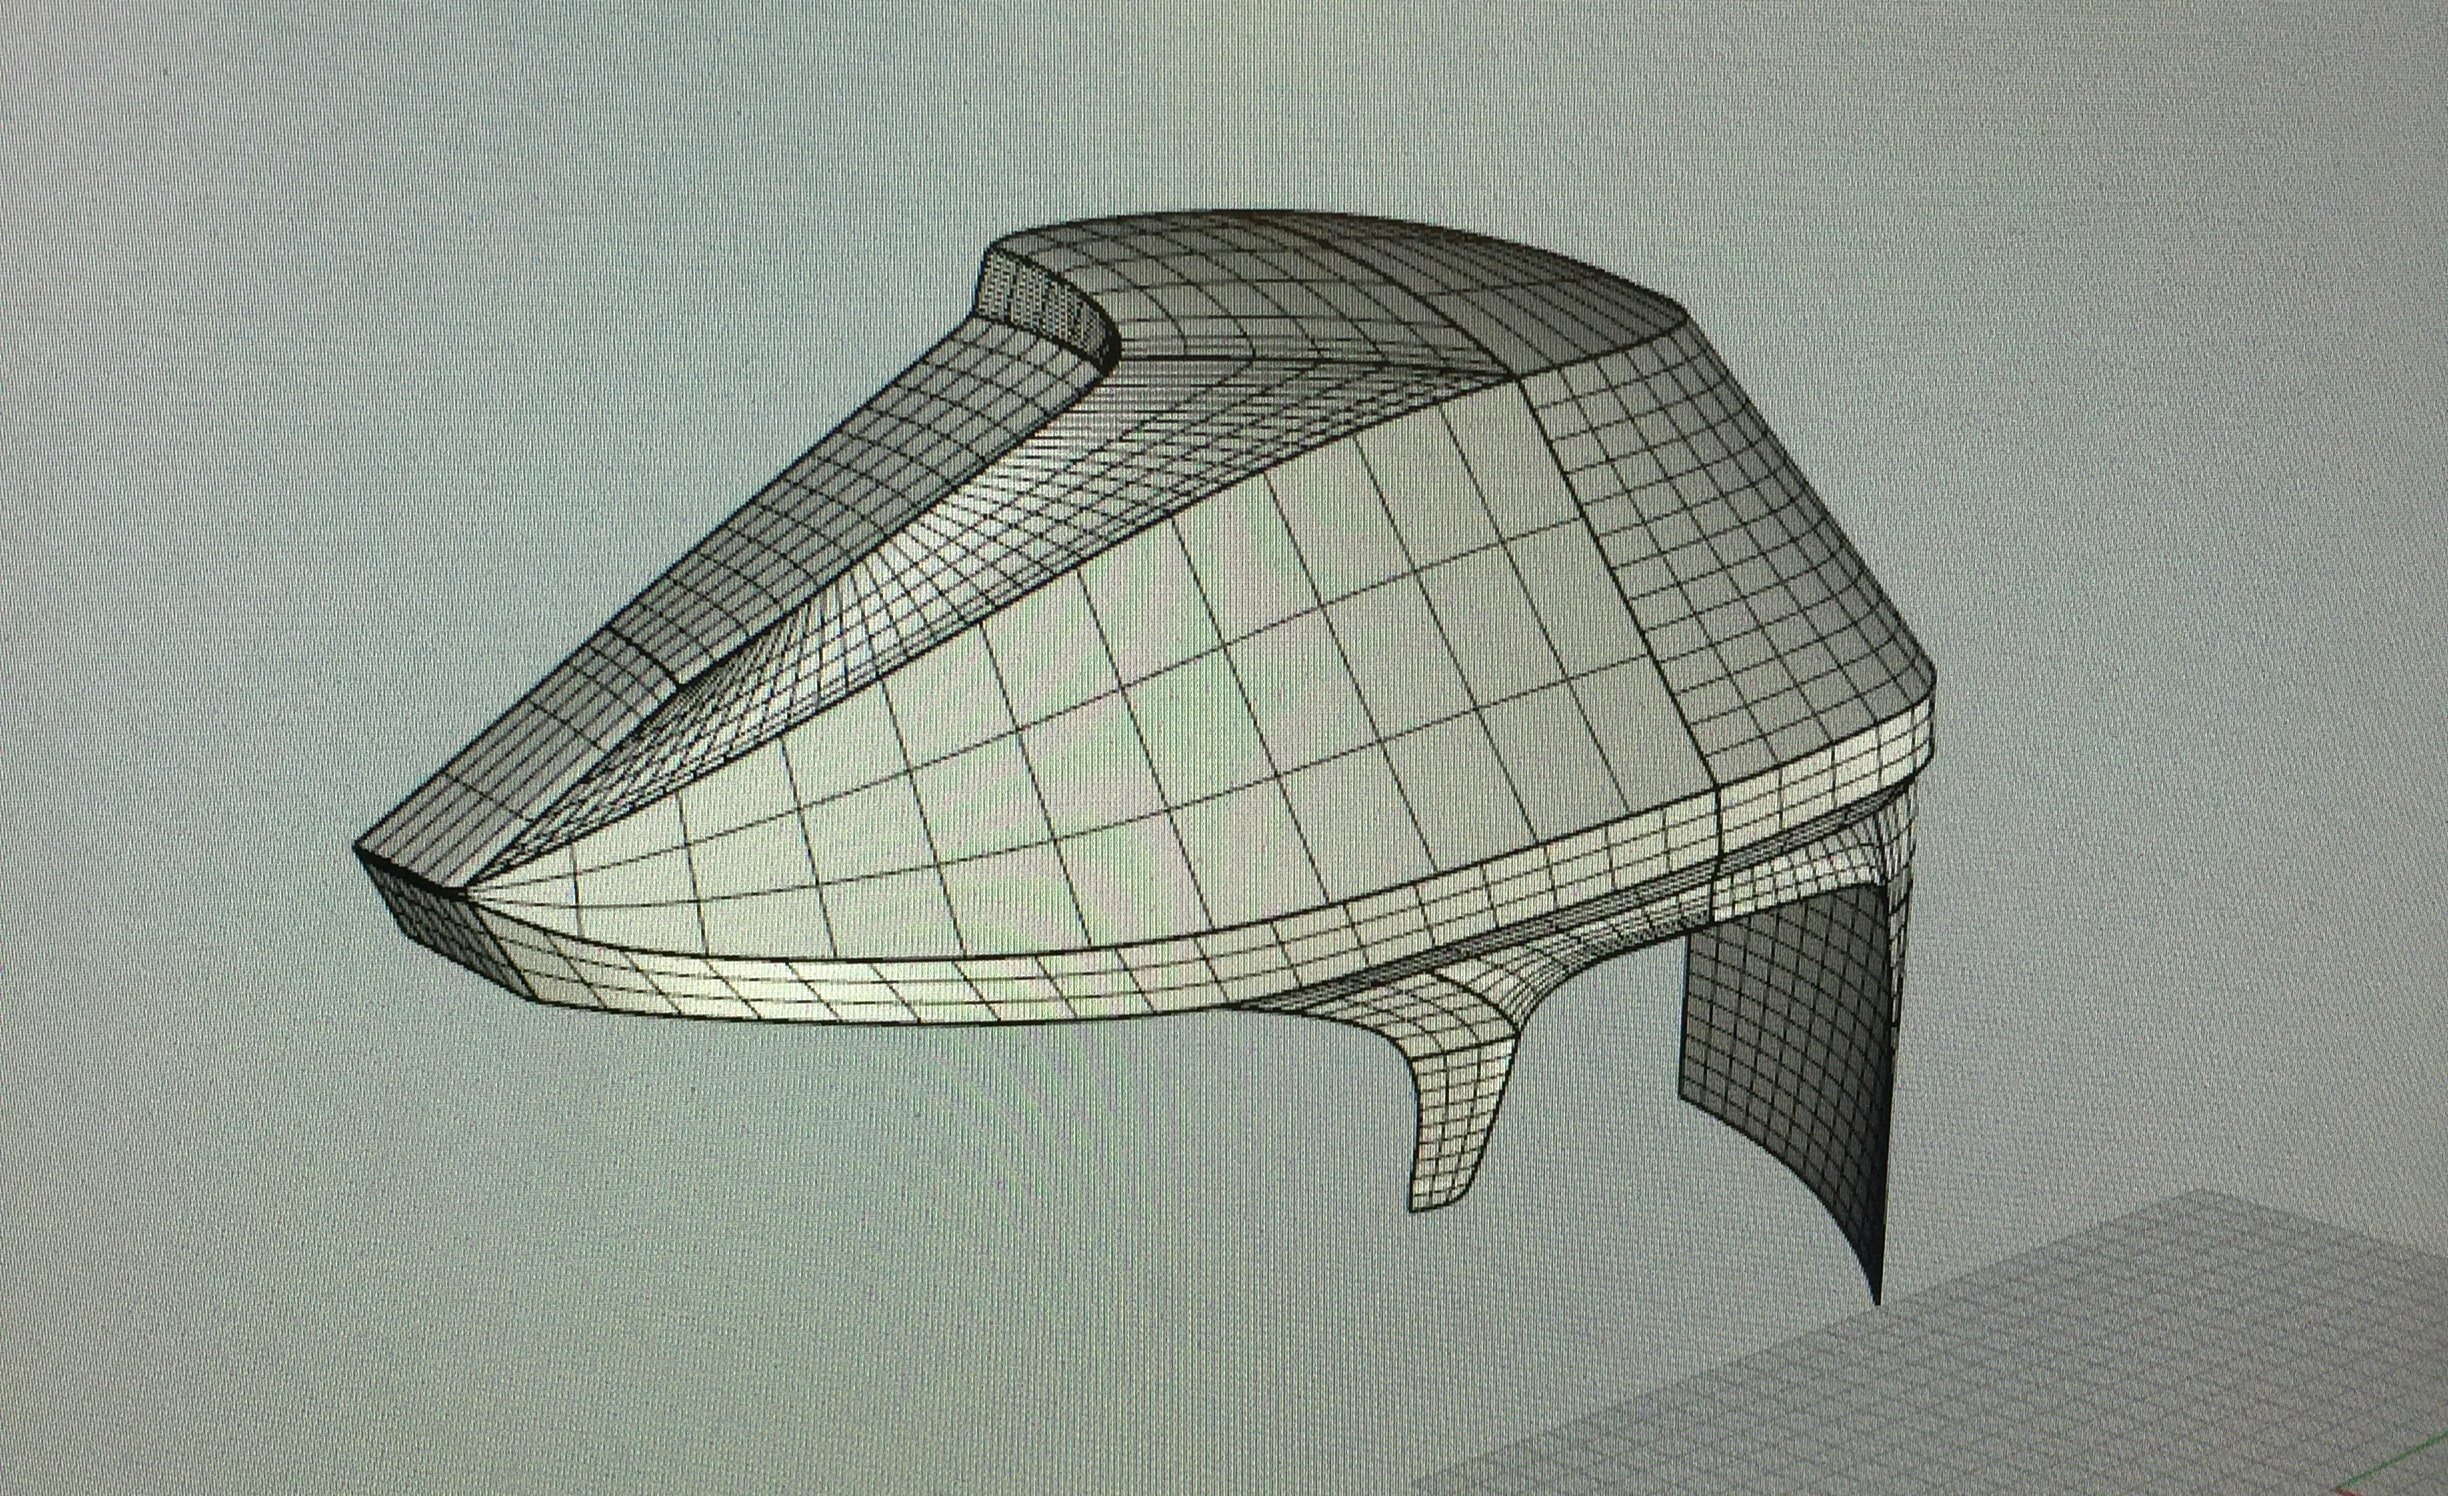 Rhino Surfacing - In Rhino, the mesh was converted into a solid and mirrored to create a full helmet.